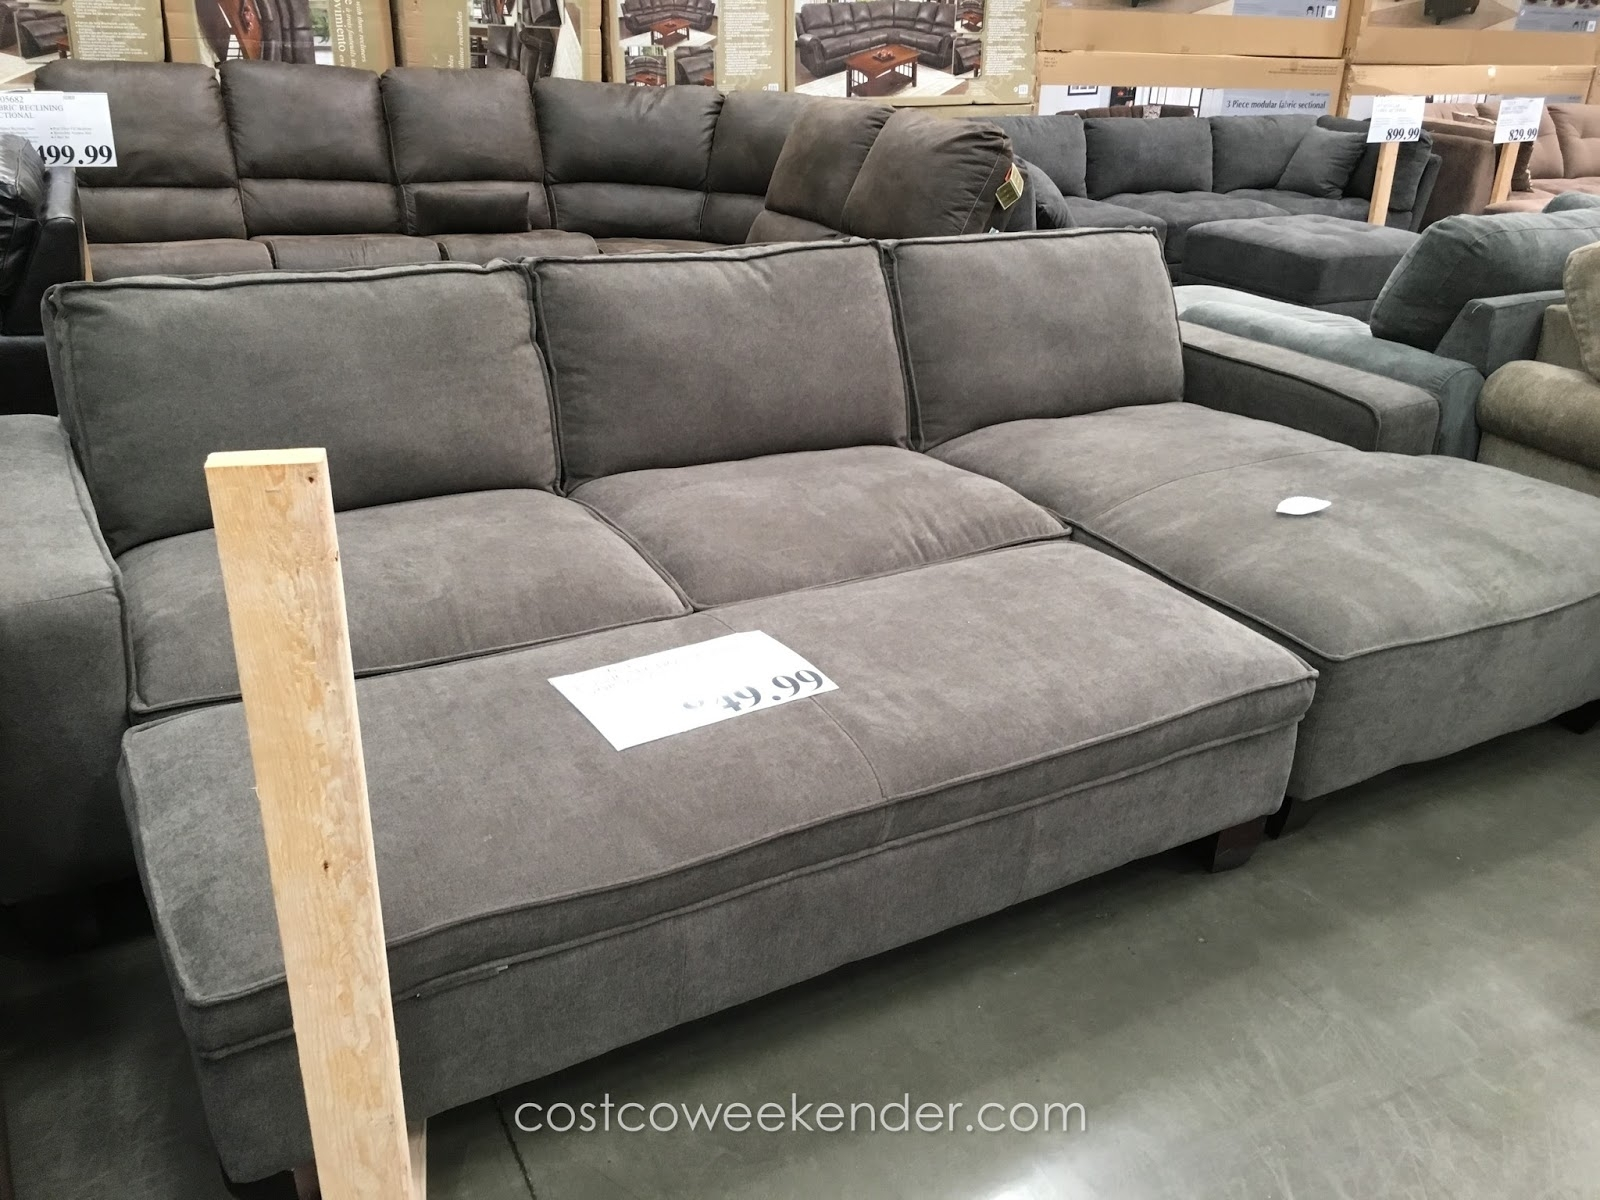 Ottomane Sofa. Furniture Ottoman Couch Fresh Leather Sofa With Large intended for Sofas With Large Ottoman (Image 7 of 10)